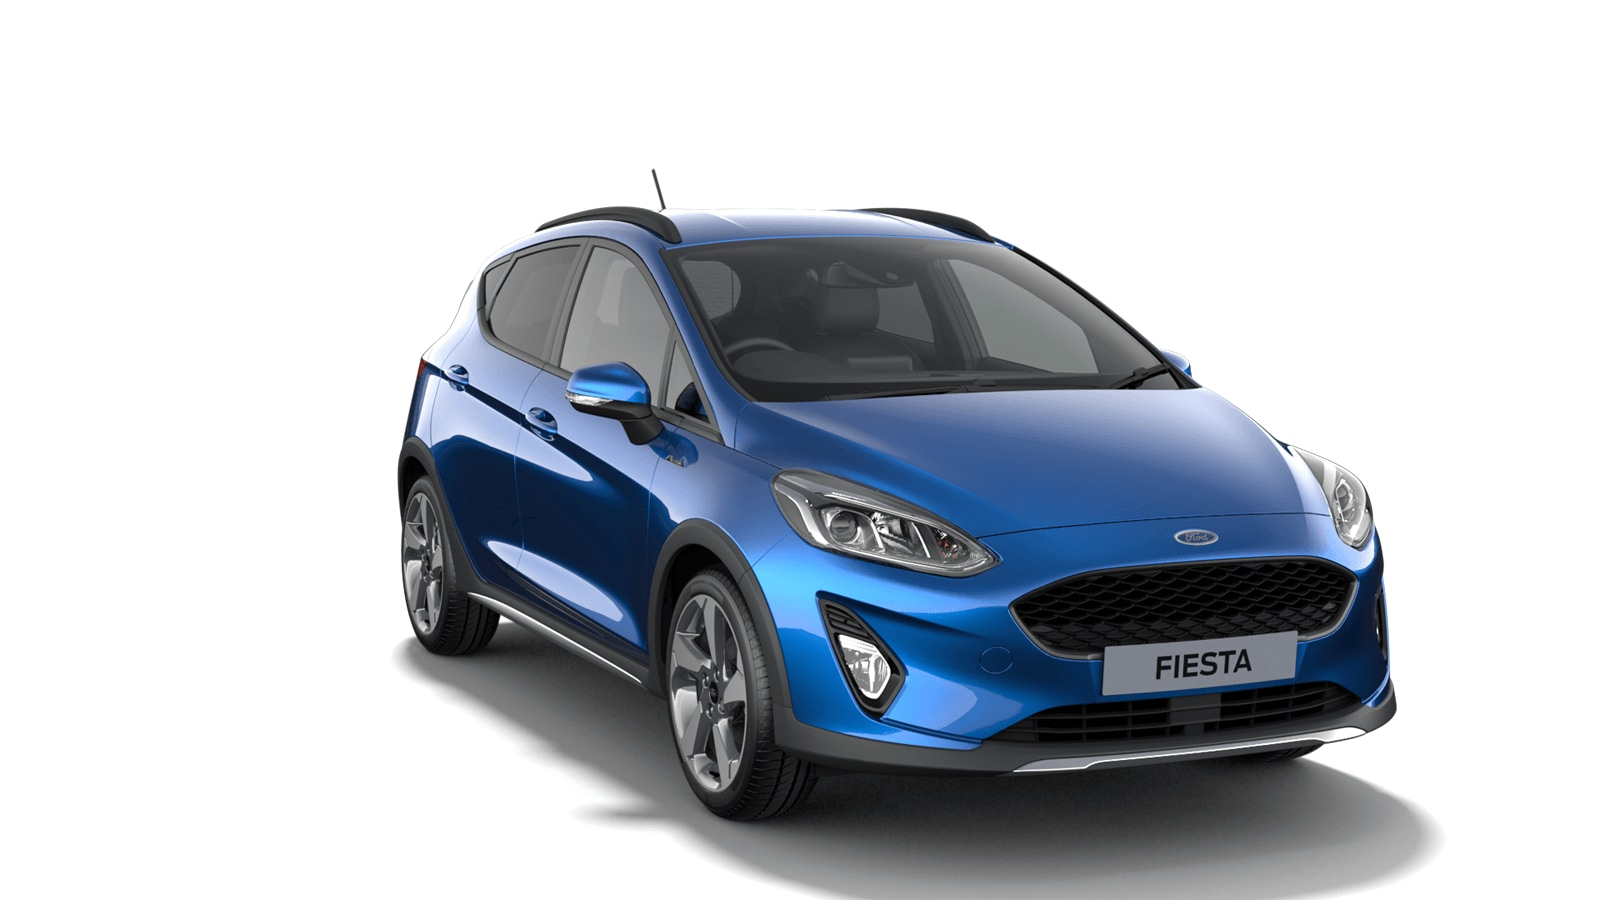 Ford Fiesta at Browne & Day